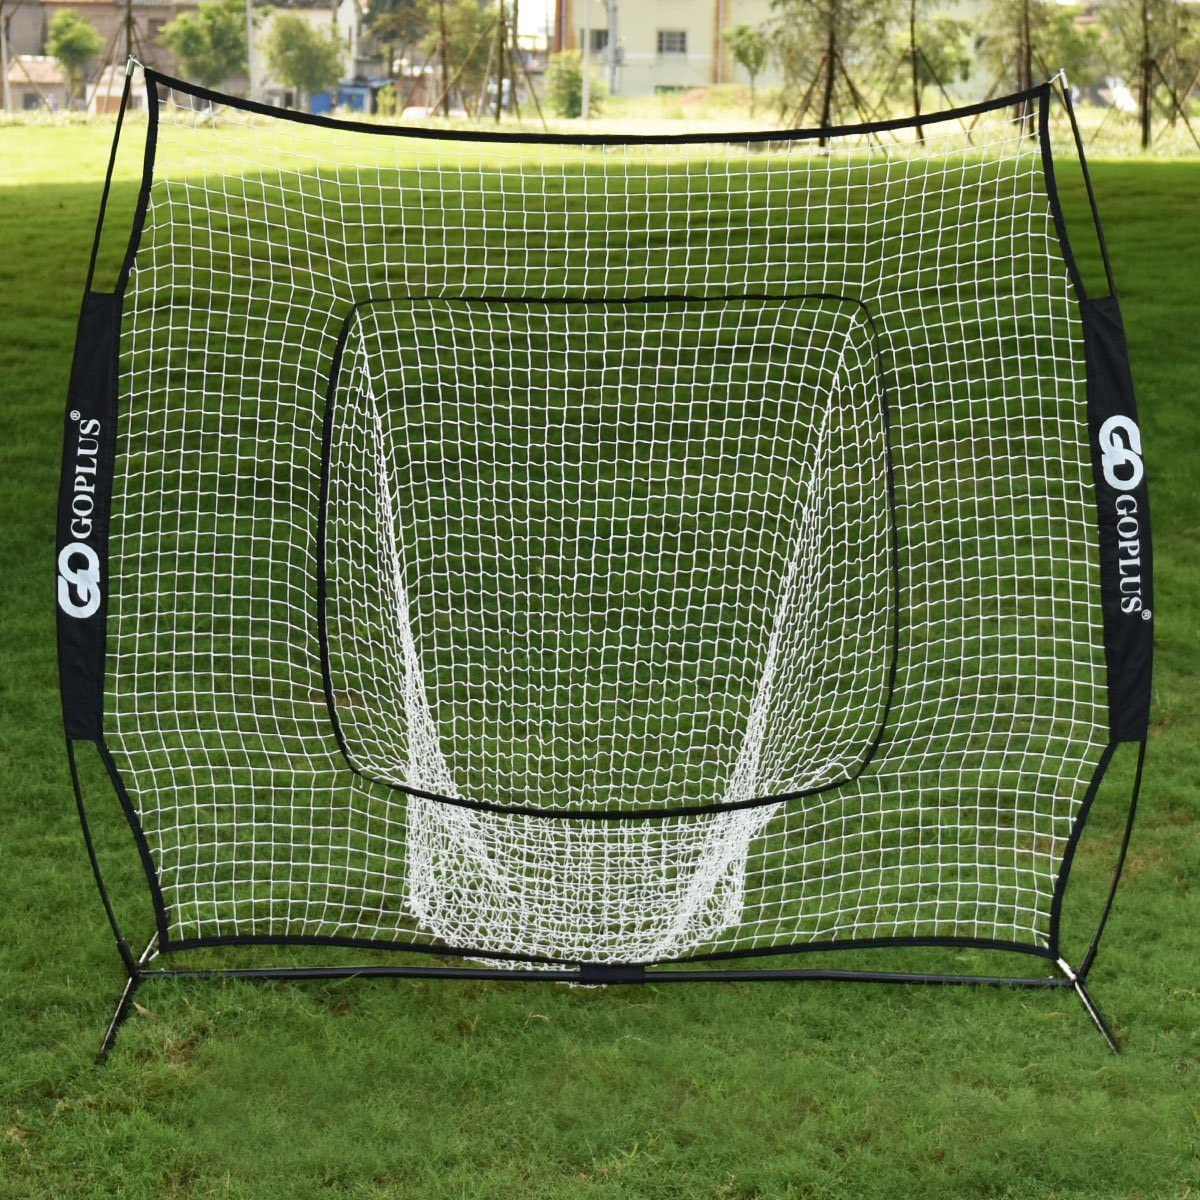 GOPLUS Practice Net, 7 7 Baseball Softball Hitting Pitching Net, Suitable for Indoor Outdoor Training Hitting Batting Catching Pitching, with Bow Frame Carry Bag